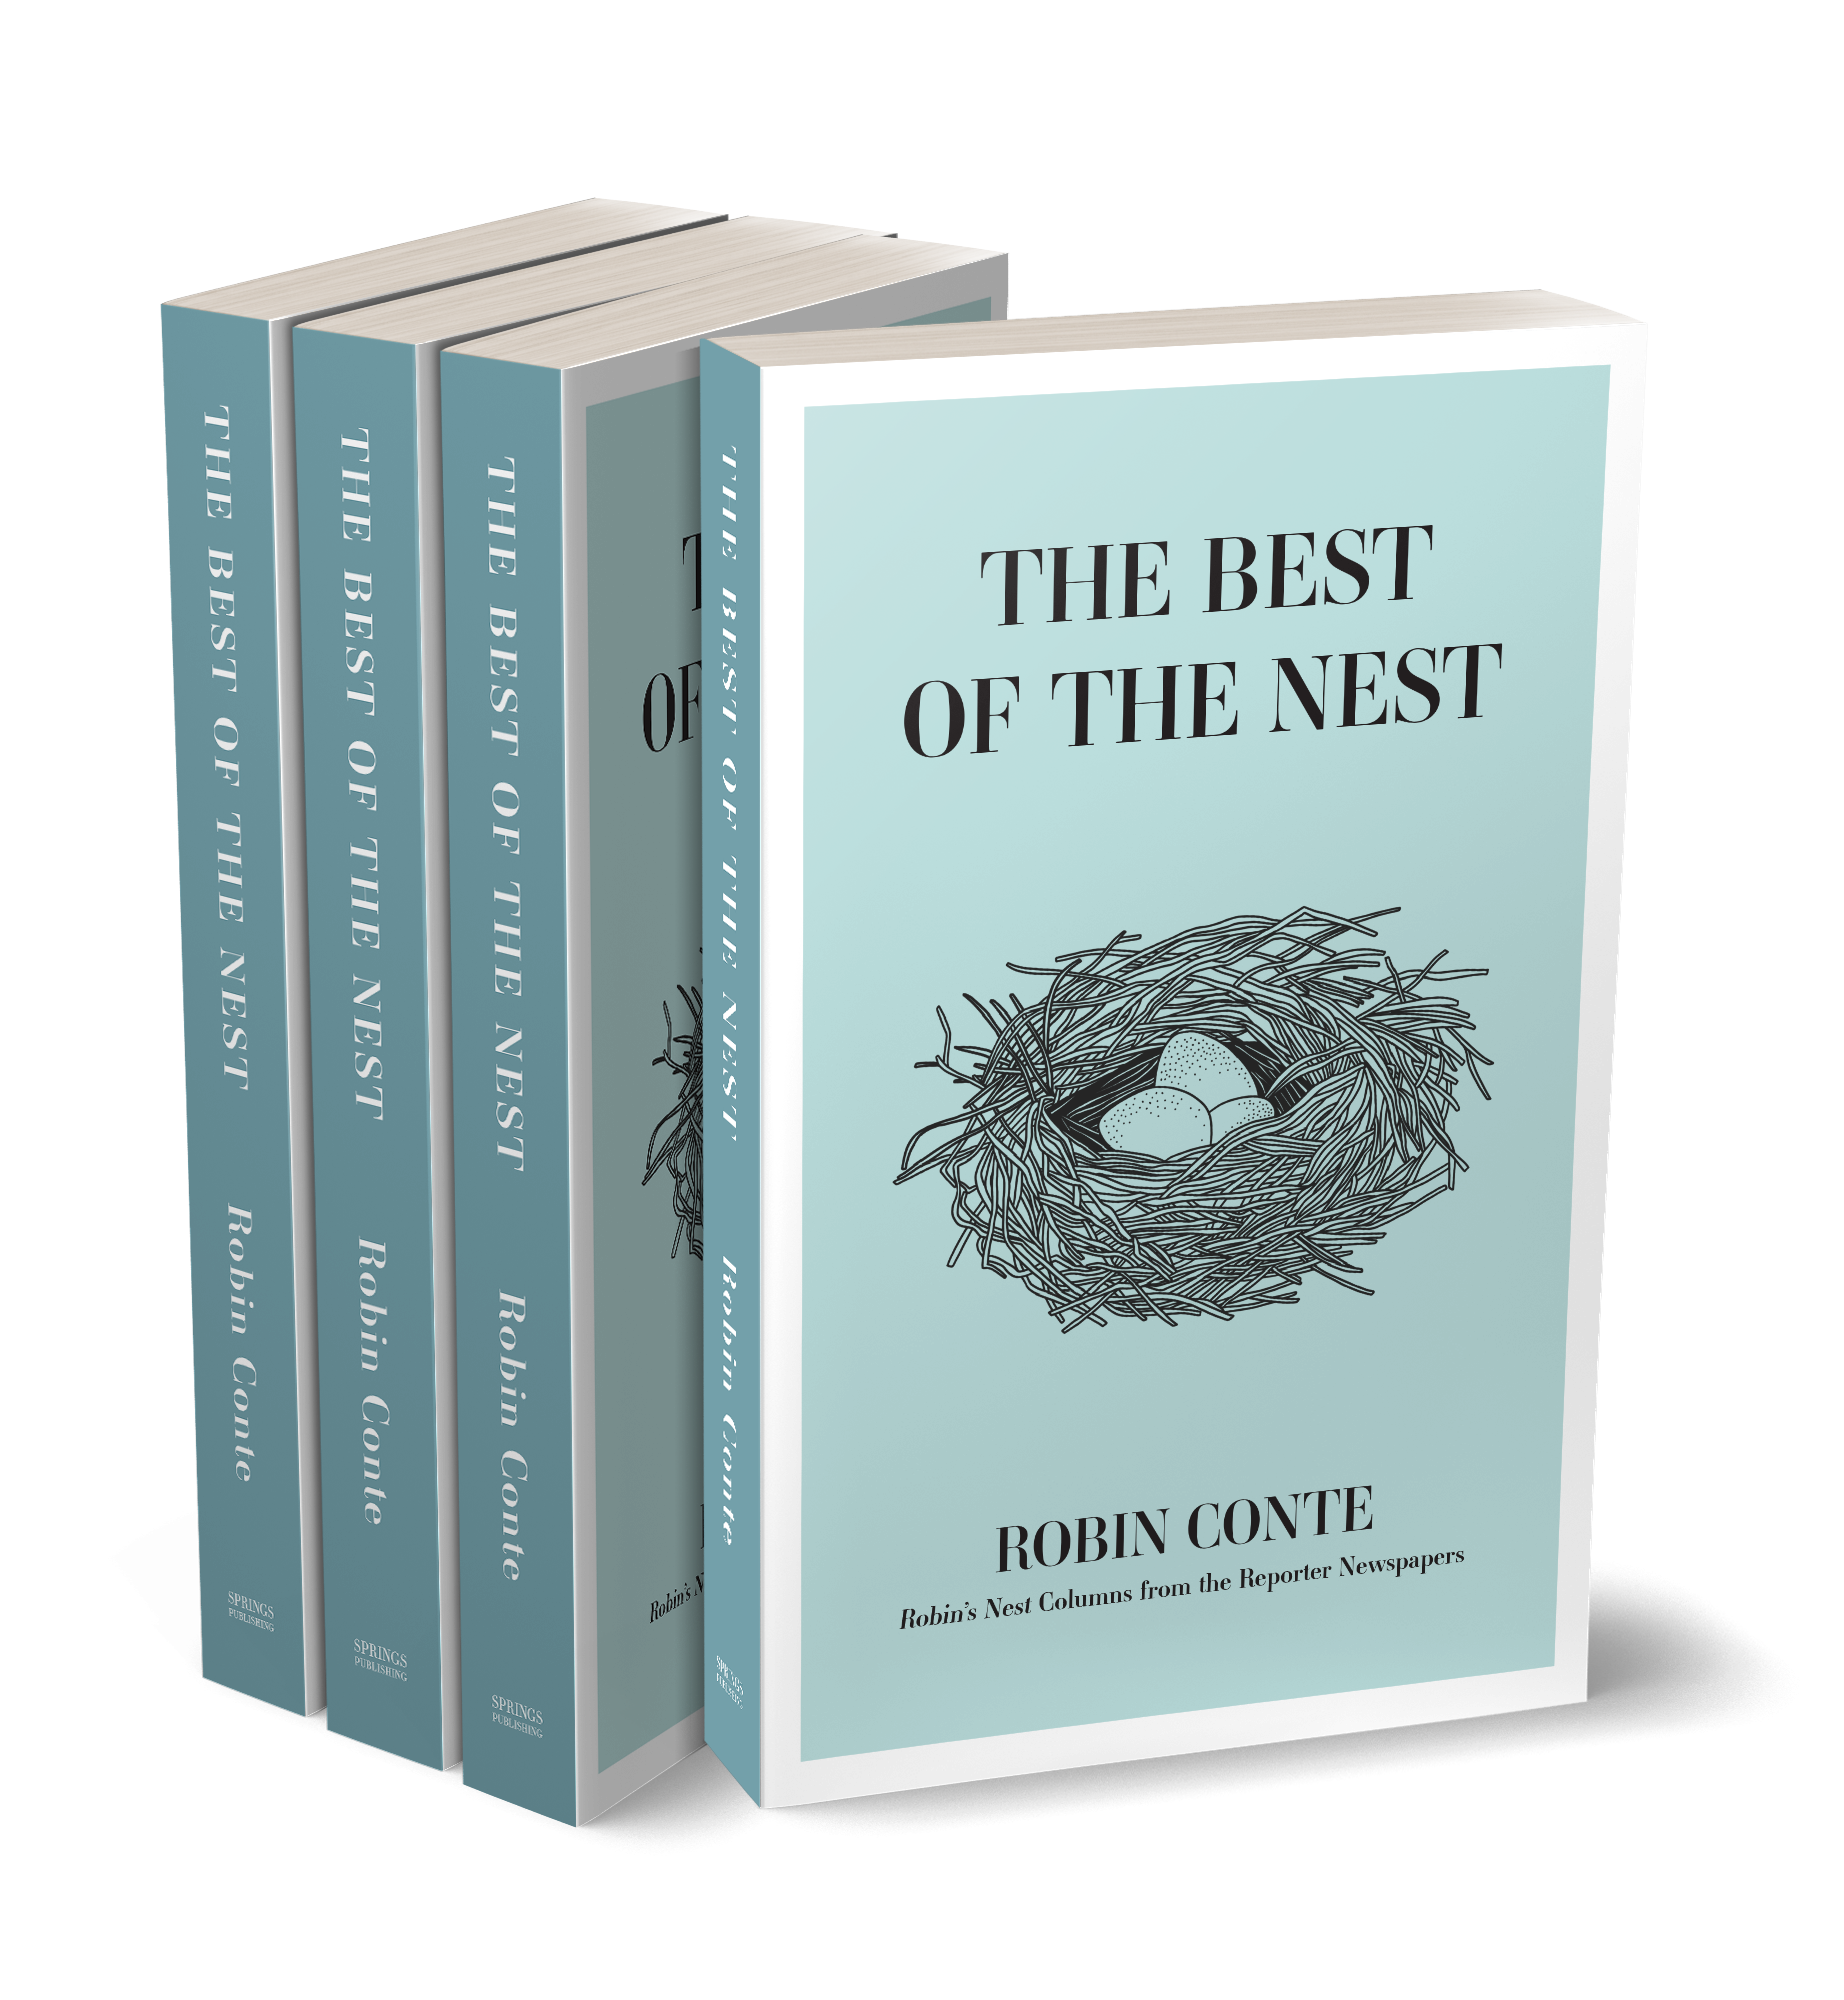 The Best of the Nest Books Stacked